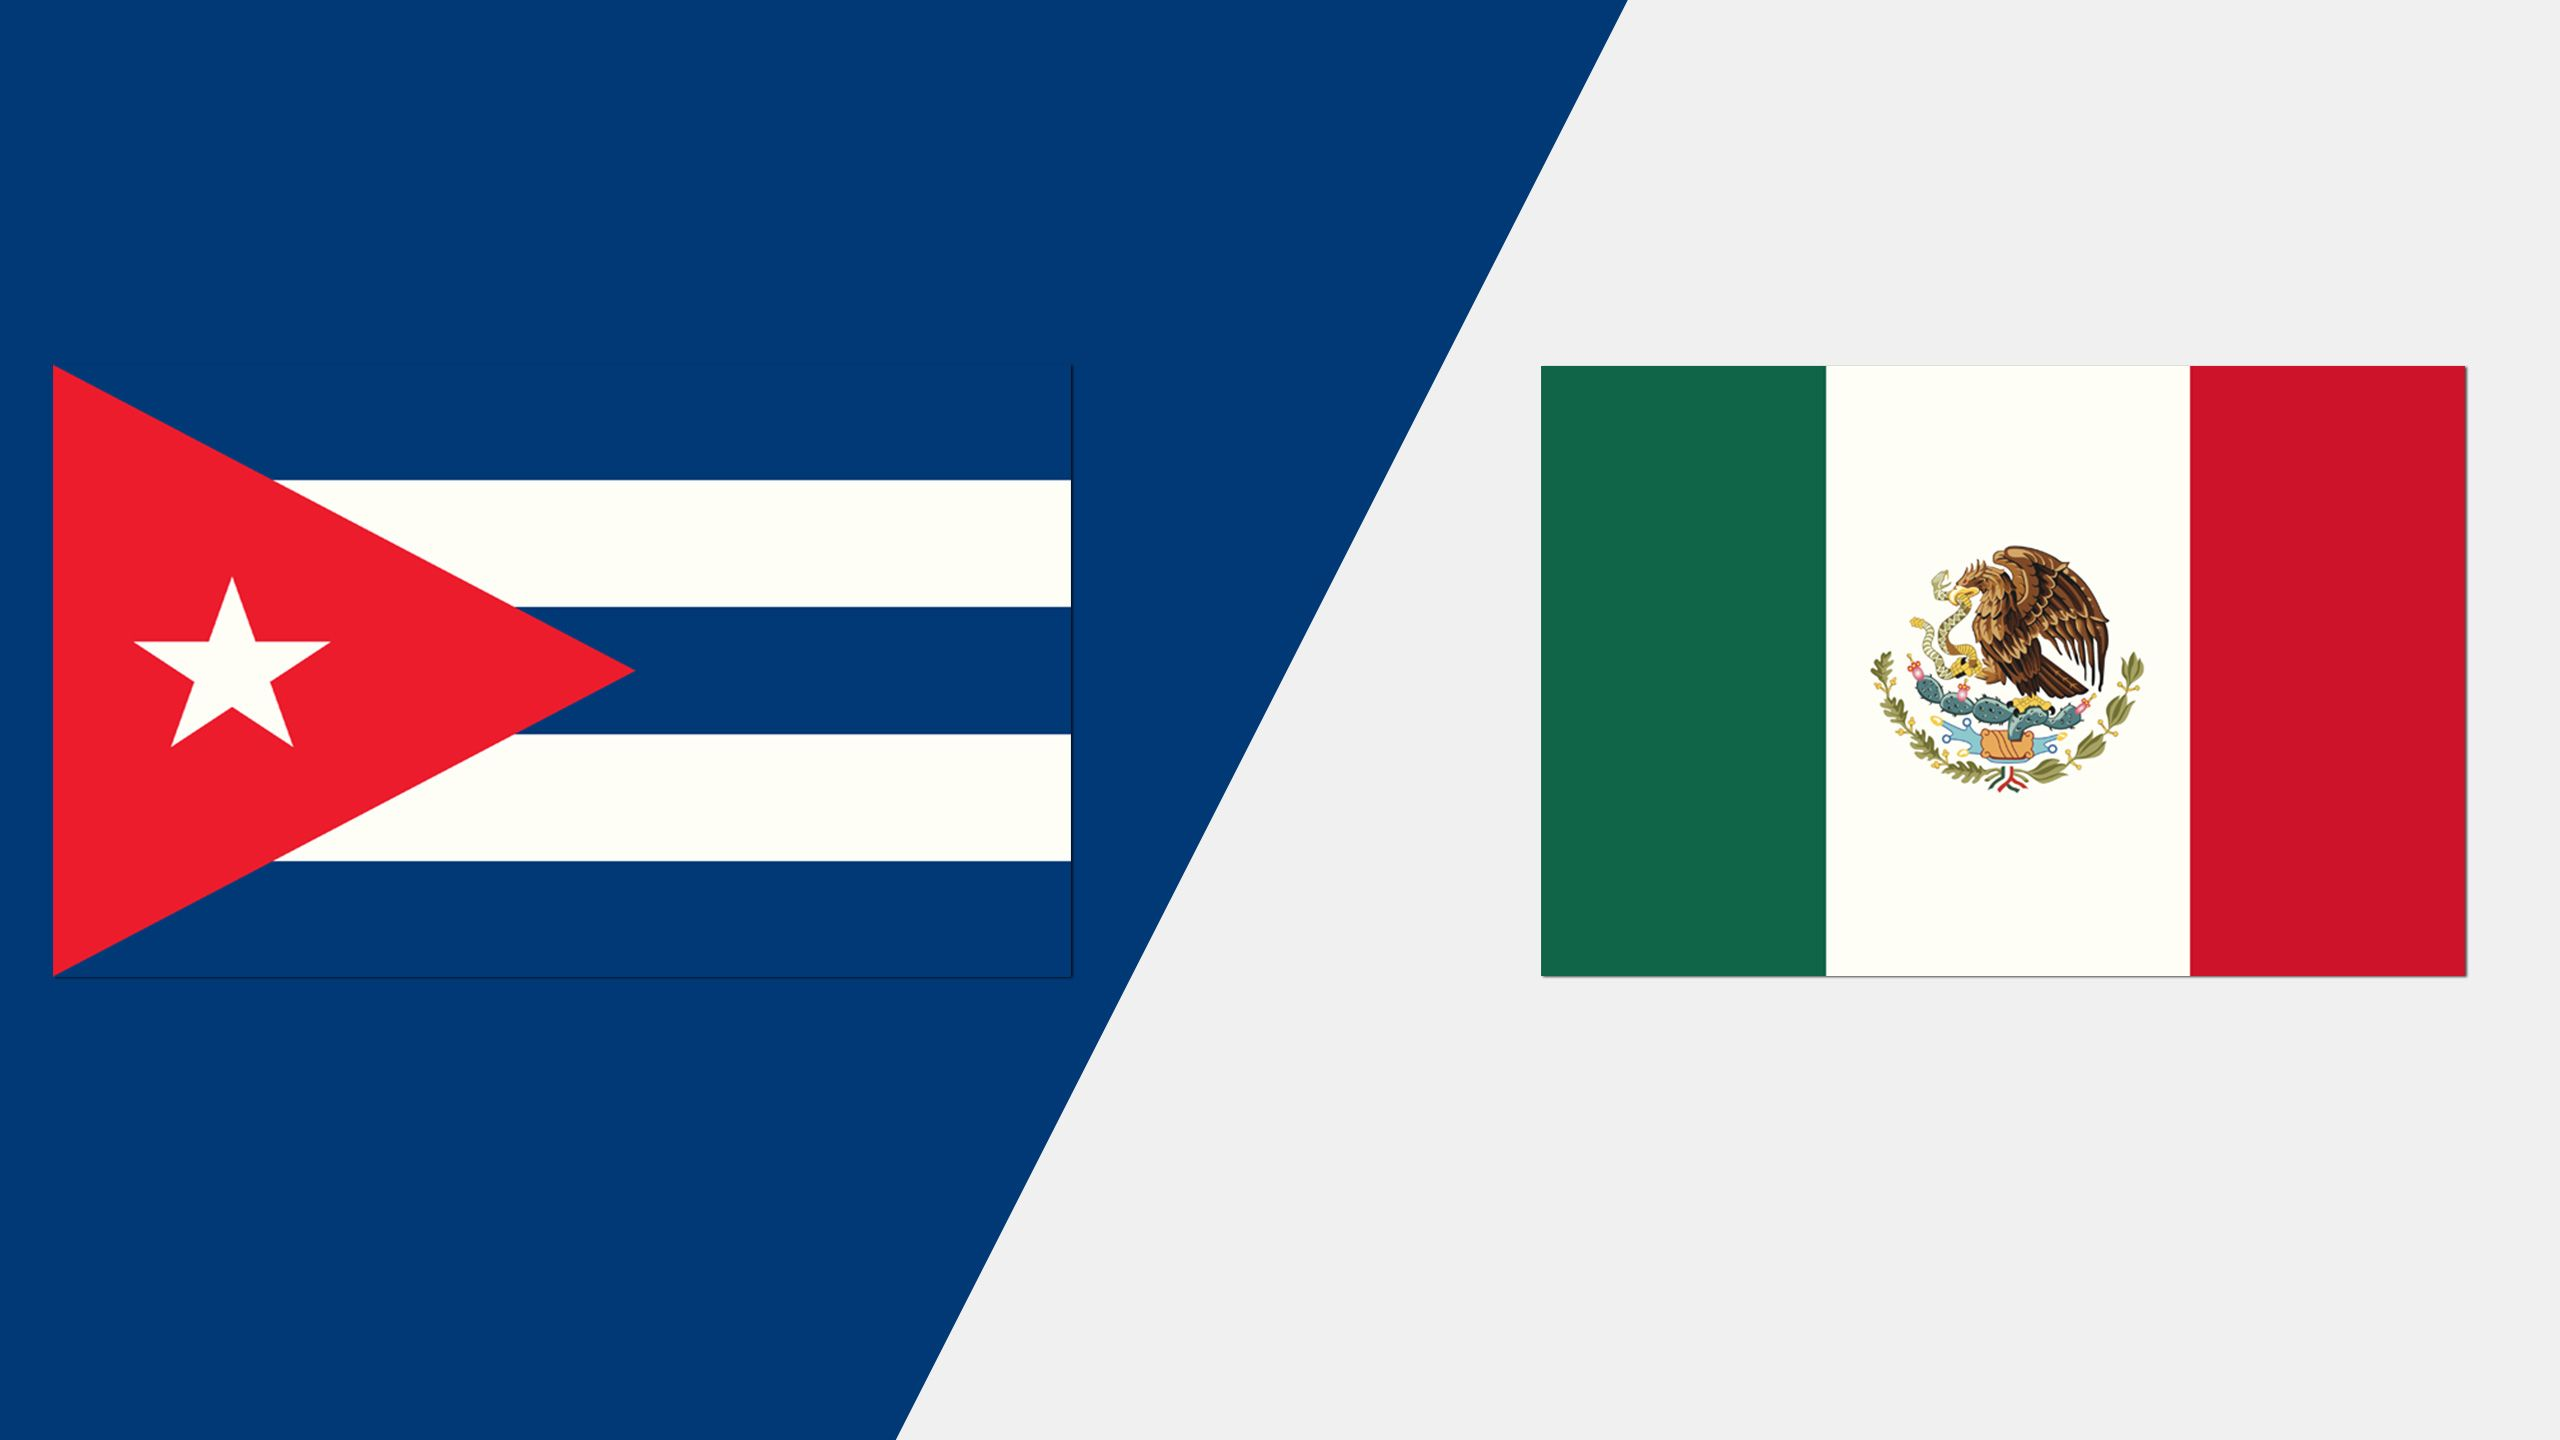 In Spanish - Cuba vs. México (Grupo A)